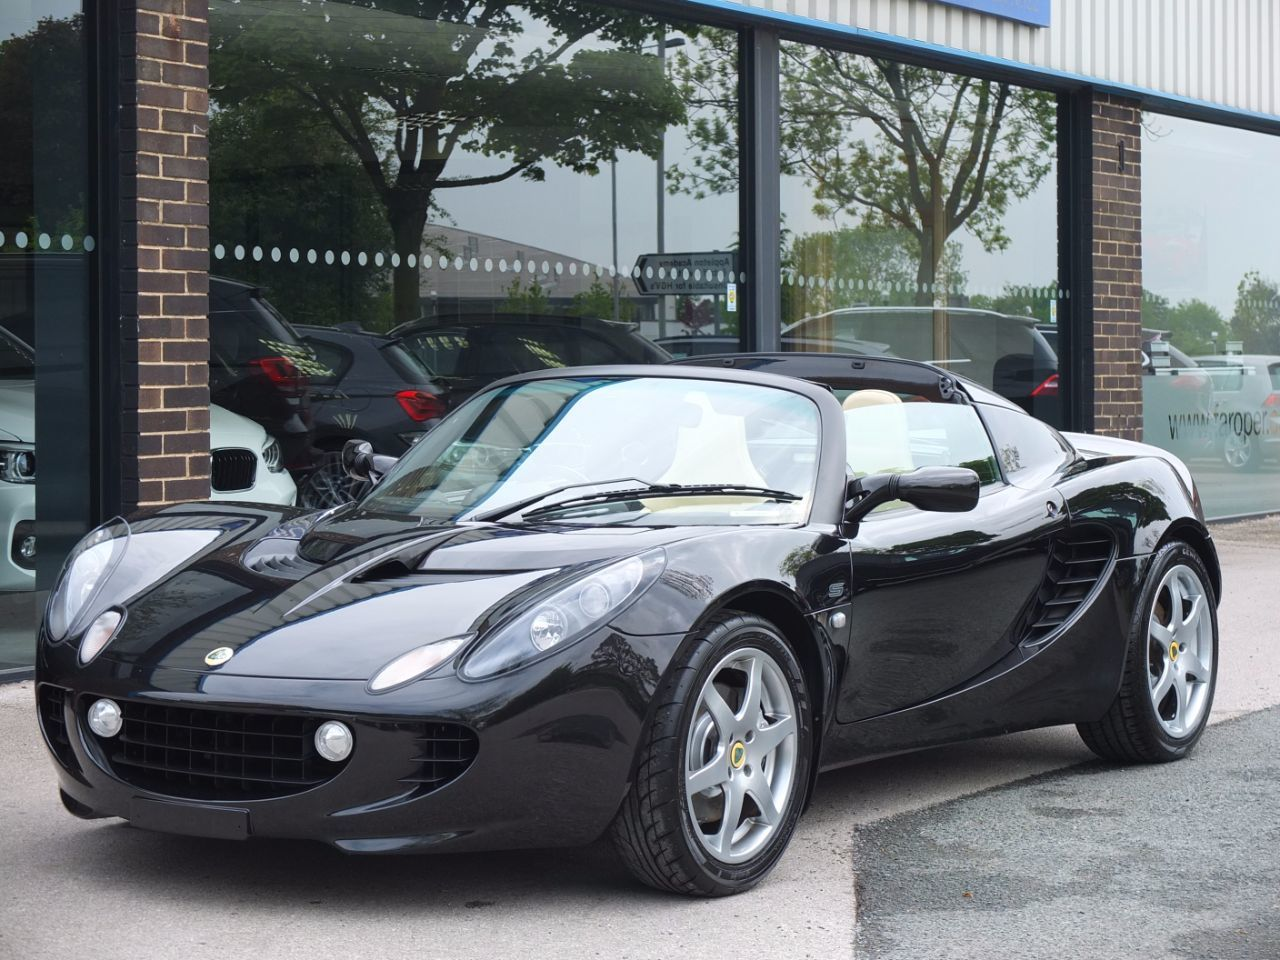 Lotus Elise 1.8 ELISE S (Touring Pack, Air Con) Convertible Petrol Starlight Black MetallicLotus Elise 1.8 ELISE S (Touring Pack, Air Con) Convertible Petrol Starlight Black Metallic at fa Roper Ltd Bradford